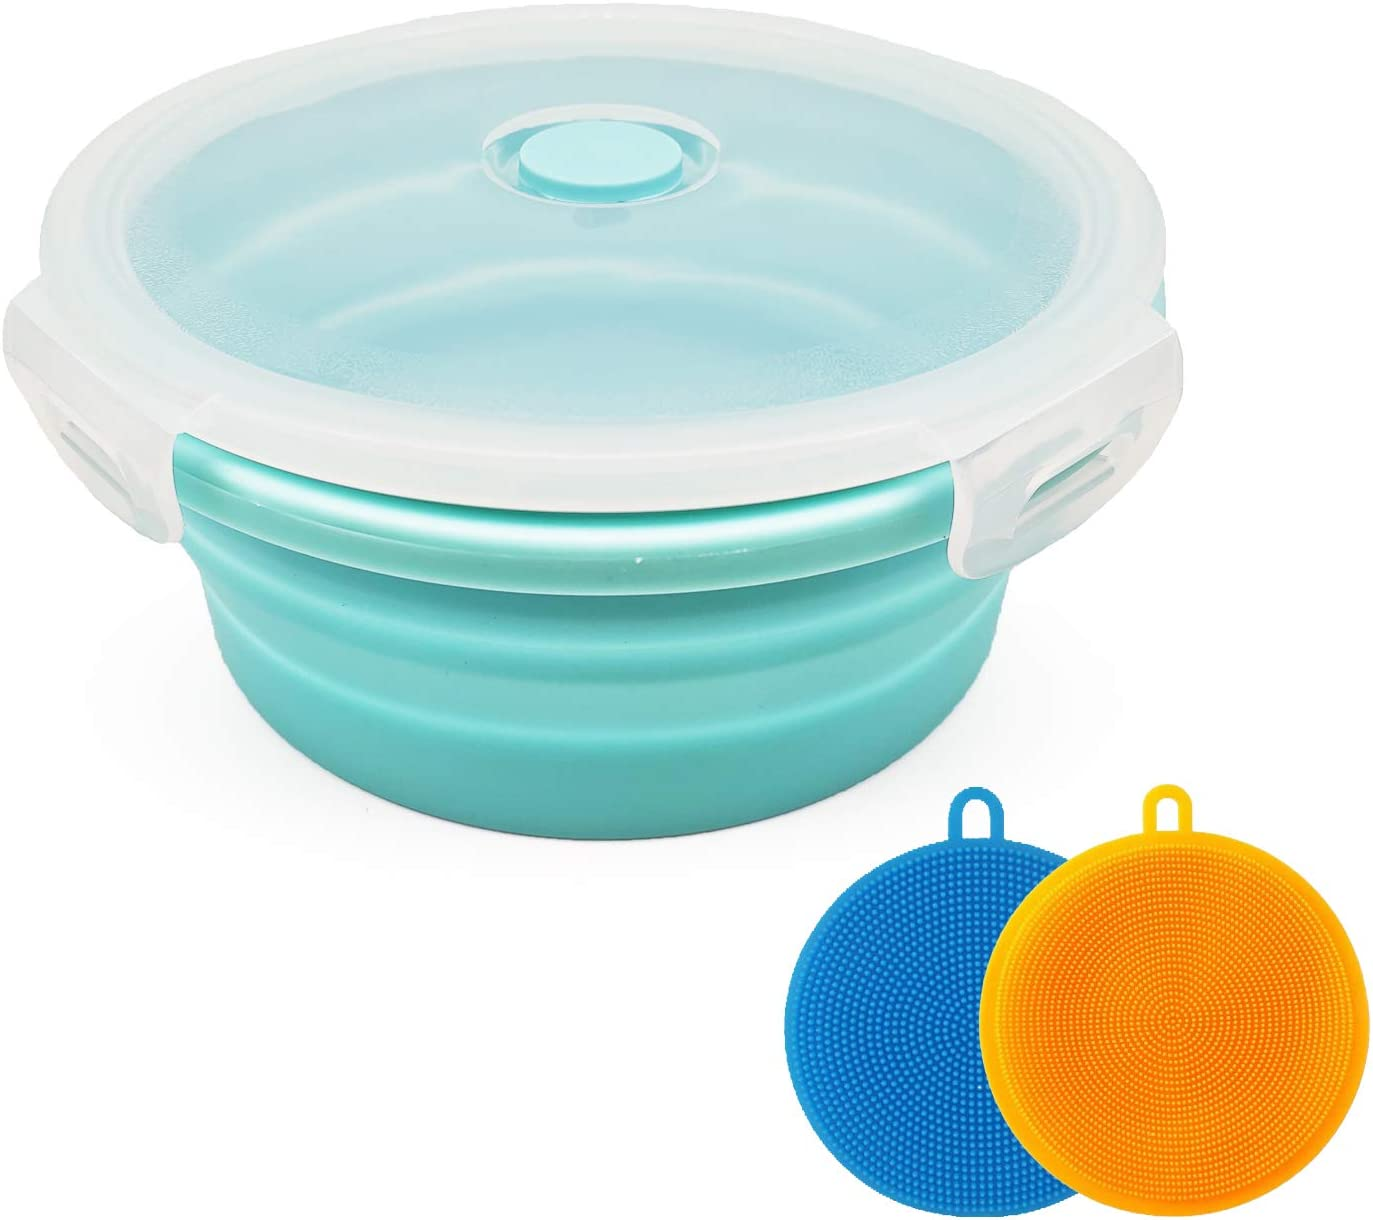 Collapsible Bowl Silicone Collapsible Container Food Storage Containers Collapsible Camping Bowl for Travel Camping Hiking with Airtight Plastic Lids and 2Pack Silicone Dish Sponges- Blue, 500ml